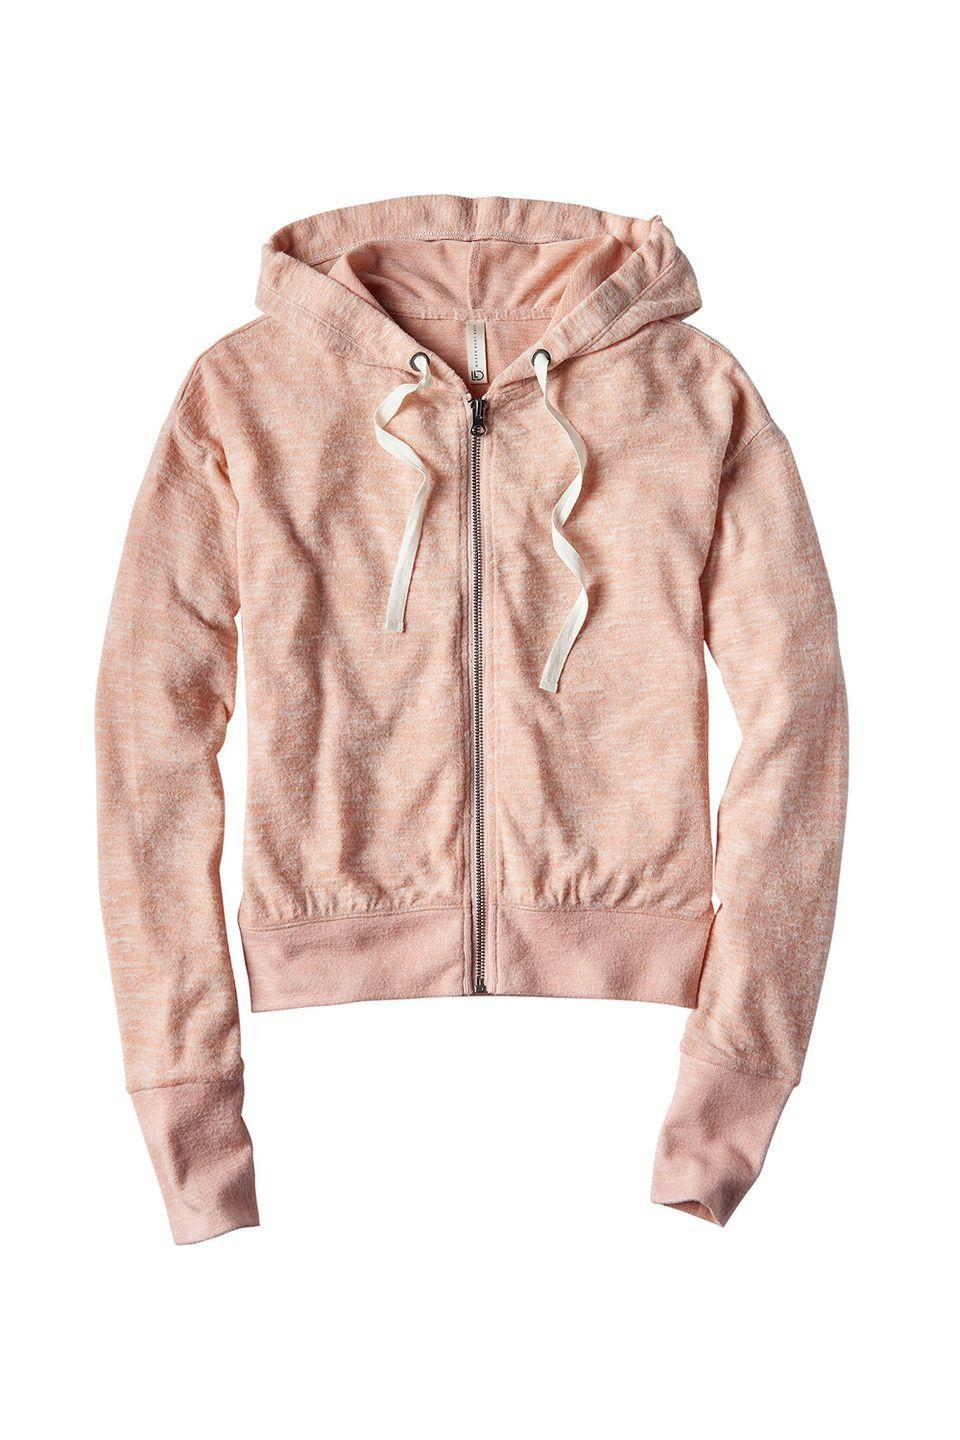 """<p>So soft you'll *literally* never want to take it off.</p><p>Aéropostale hoodie, $20, <a href=""""http://www.aeropostale.com/"""" rel=""""nofollow noopener"""" target=""""_blank"""" data-ylk=""""slk:aeropostale.com"""" class=""""link rapid-noclick-resp"""">aeropostale.com</a></p>"""